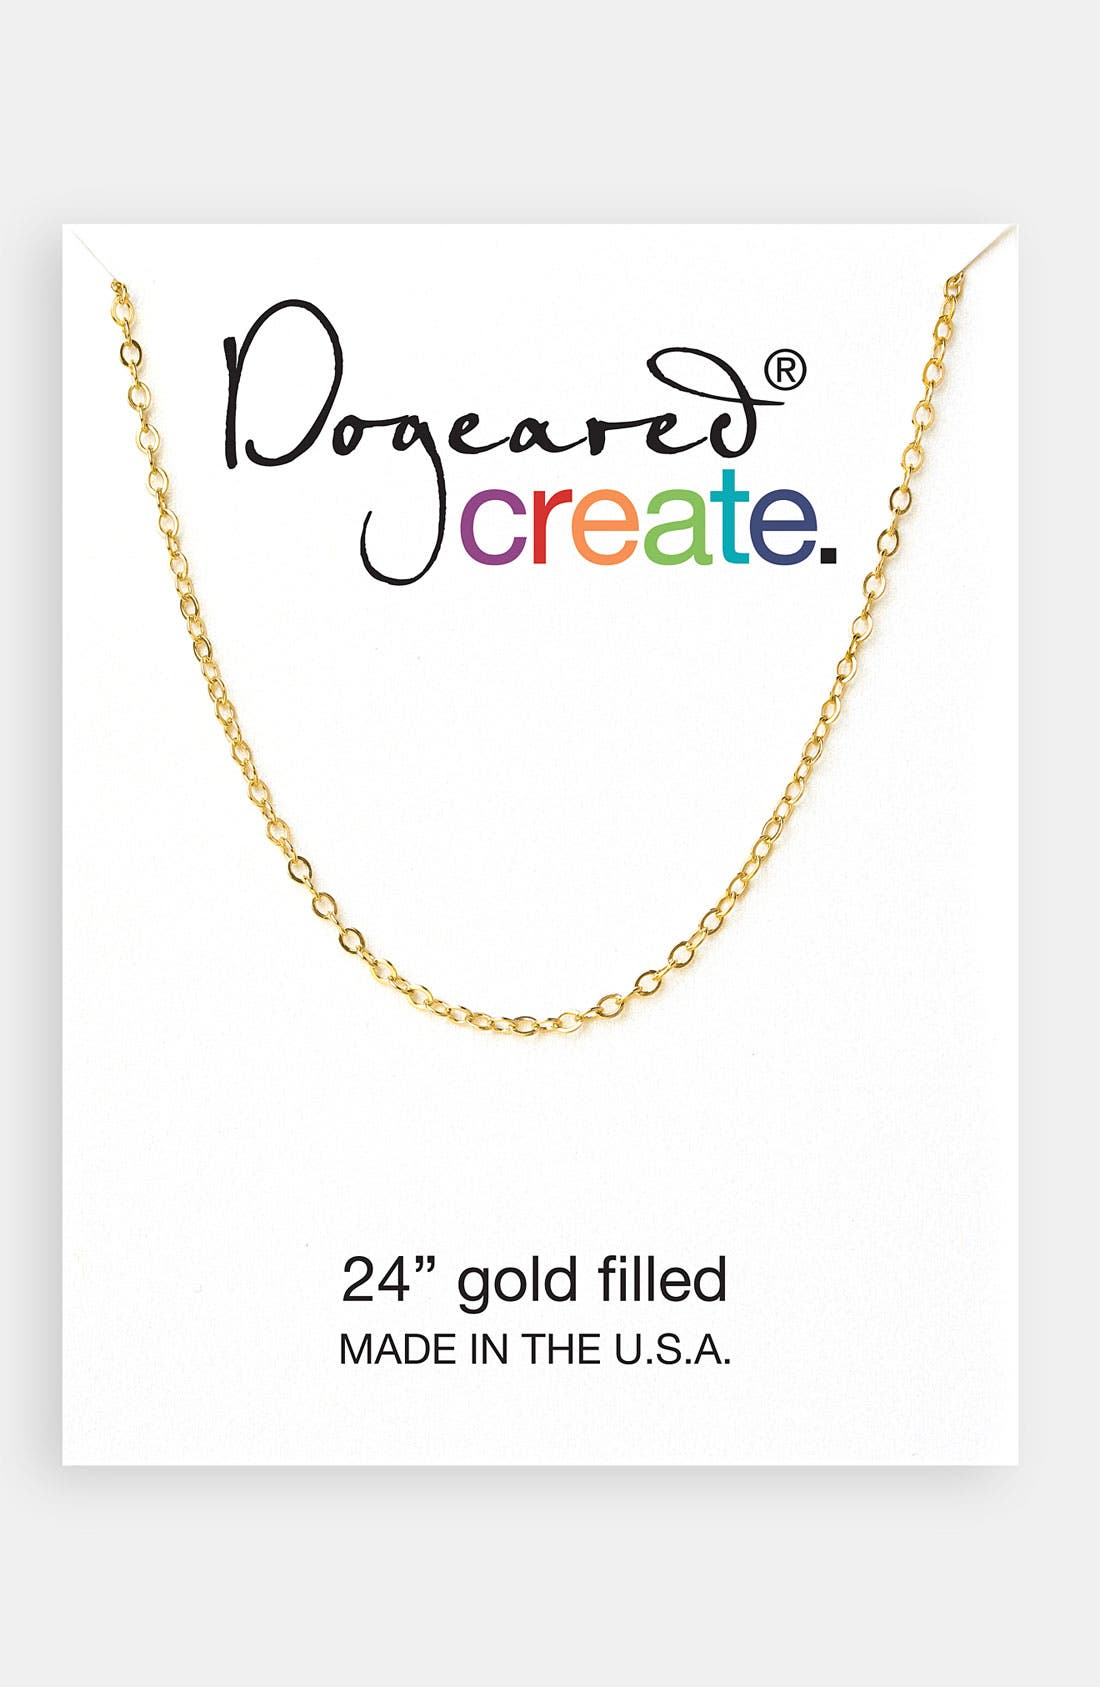 Alternate Image 1 Selected - Dogeared 'Create' Link Necklace